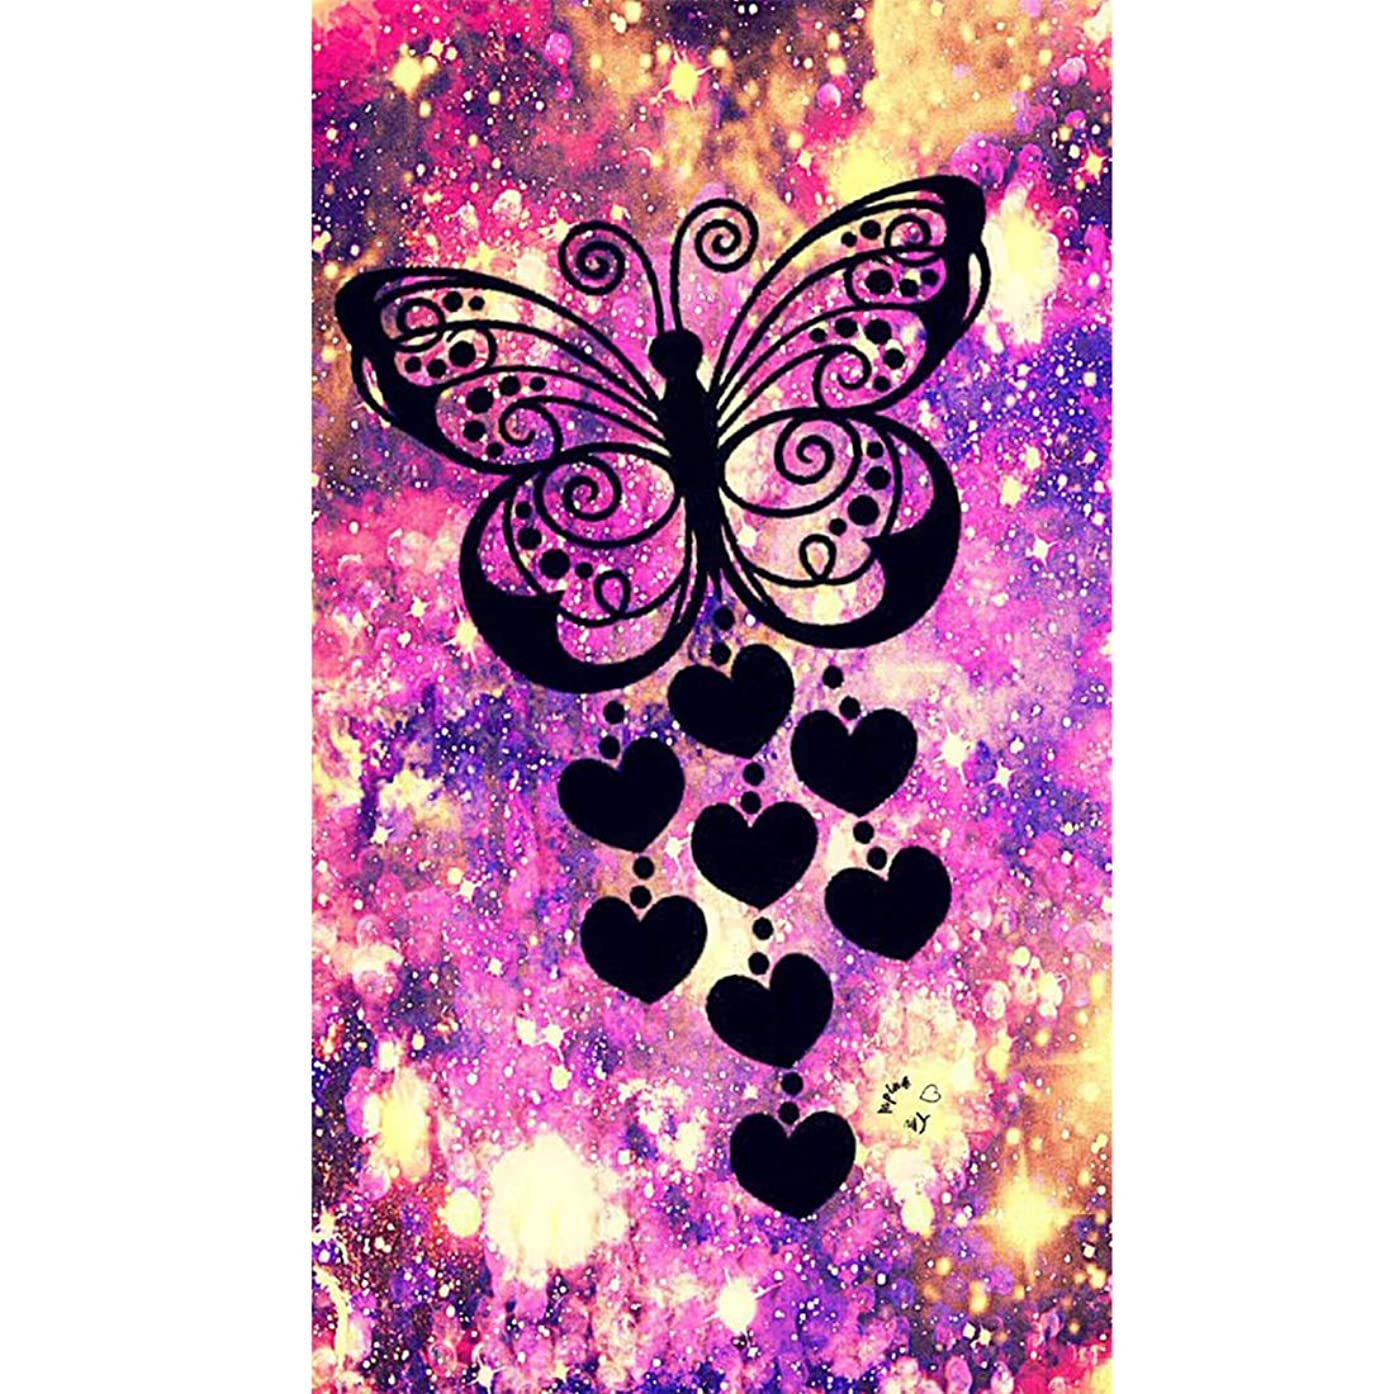 Full Drill DIY Square Diamond Painting by Number Kit, Butterfly Love Animal Embroidery Cross Stitch Rhinestone Pictures Arts Craft Home Wall Decor